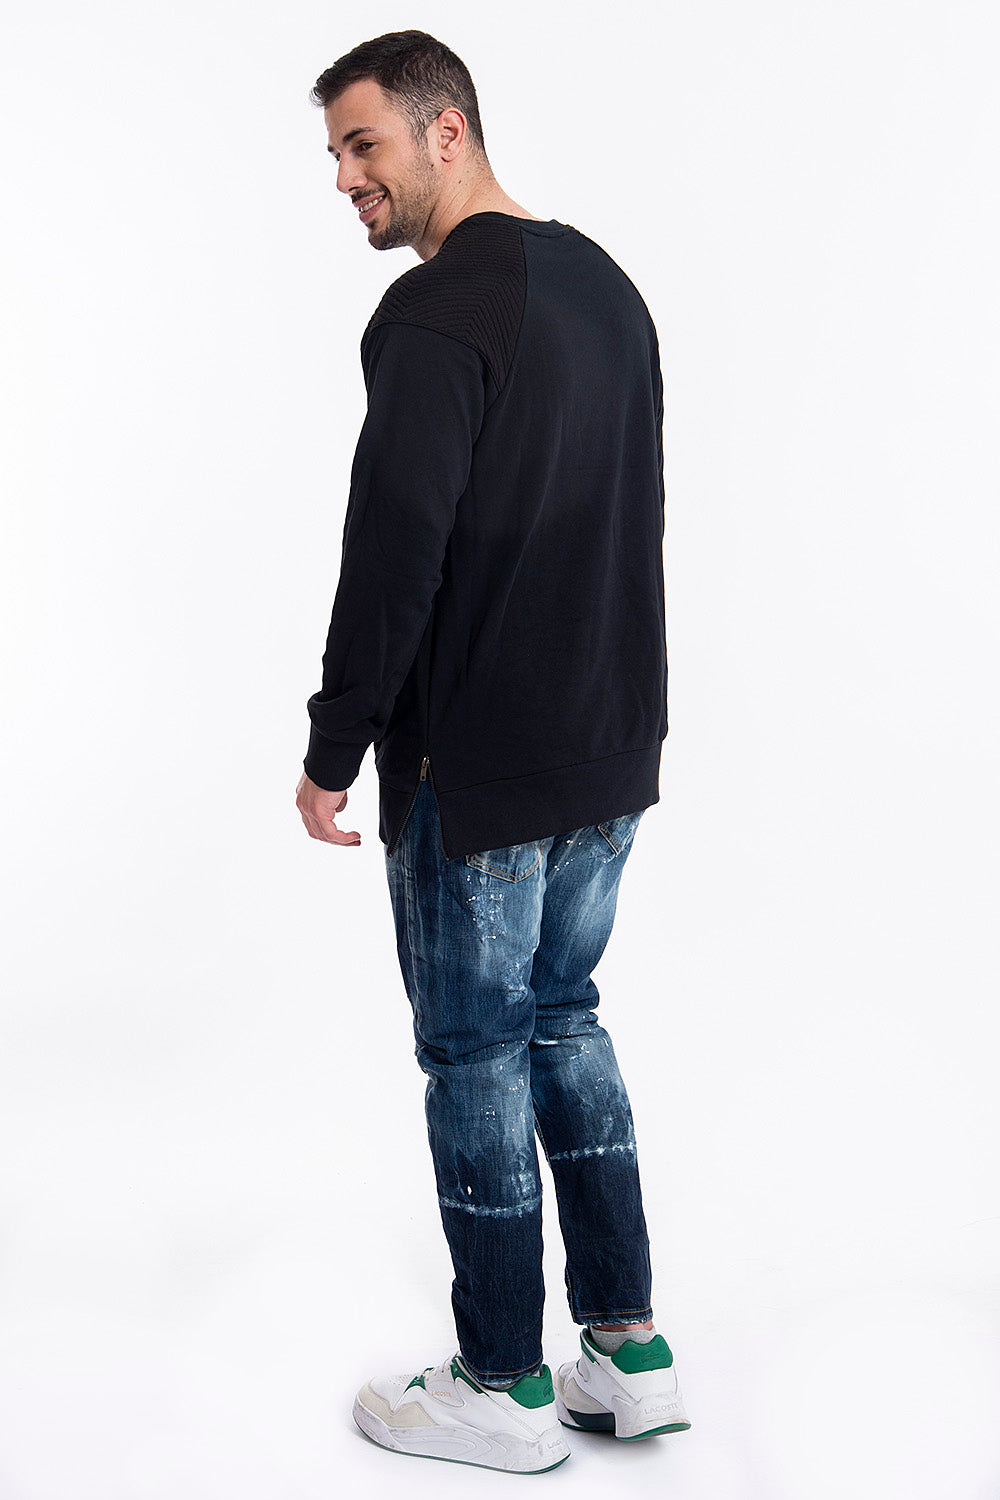 19 jumper with size zips and shoulders design